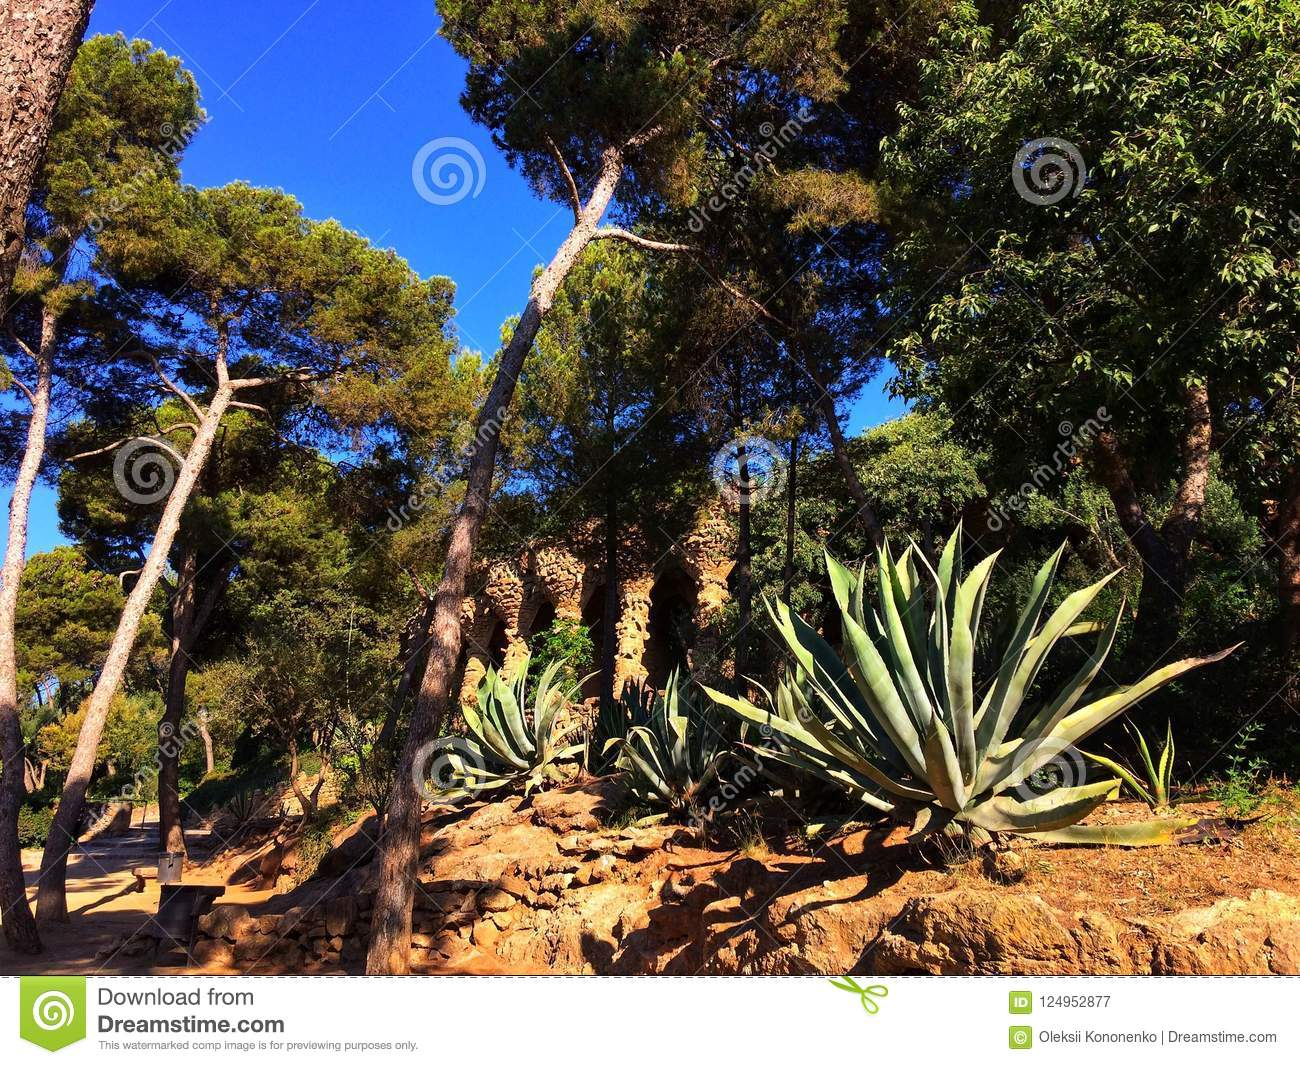 Plants in the garden stock image. Image of leaf, arid - 124952877